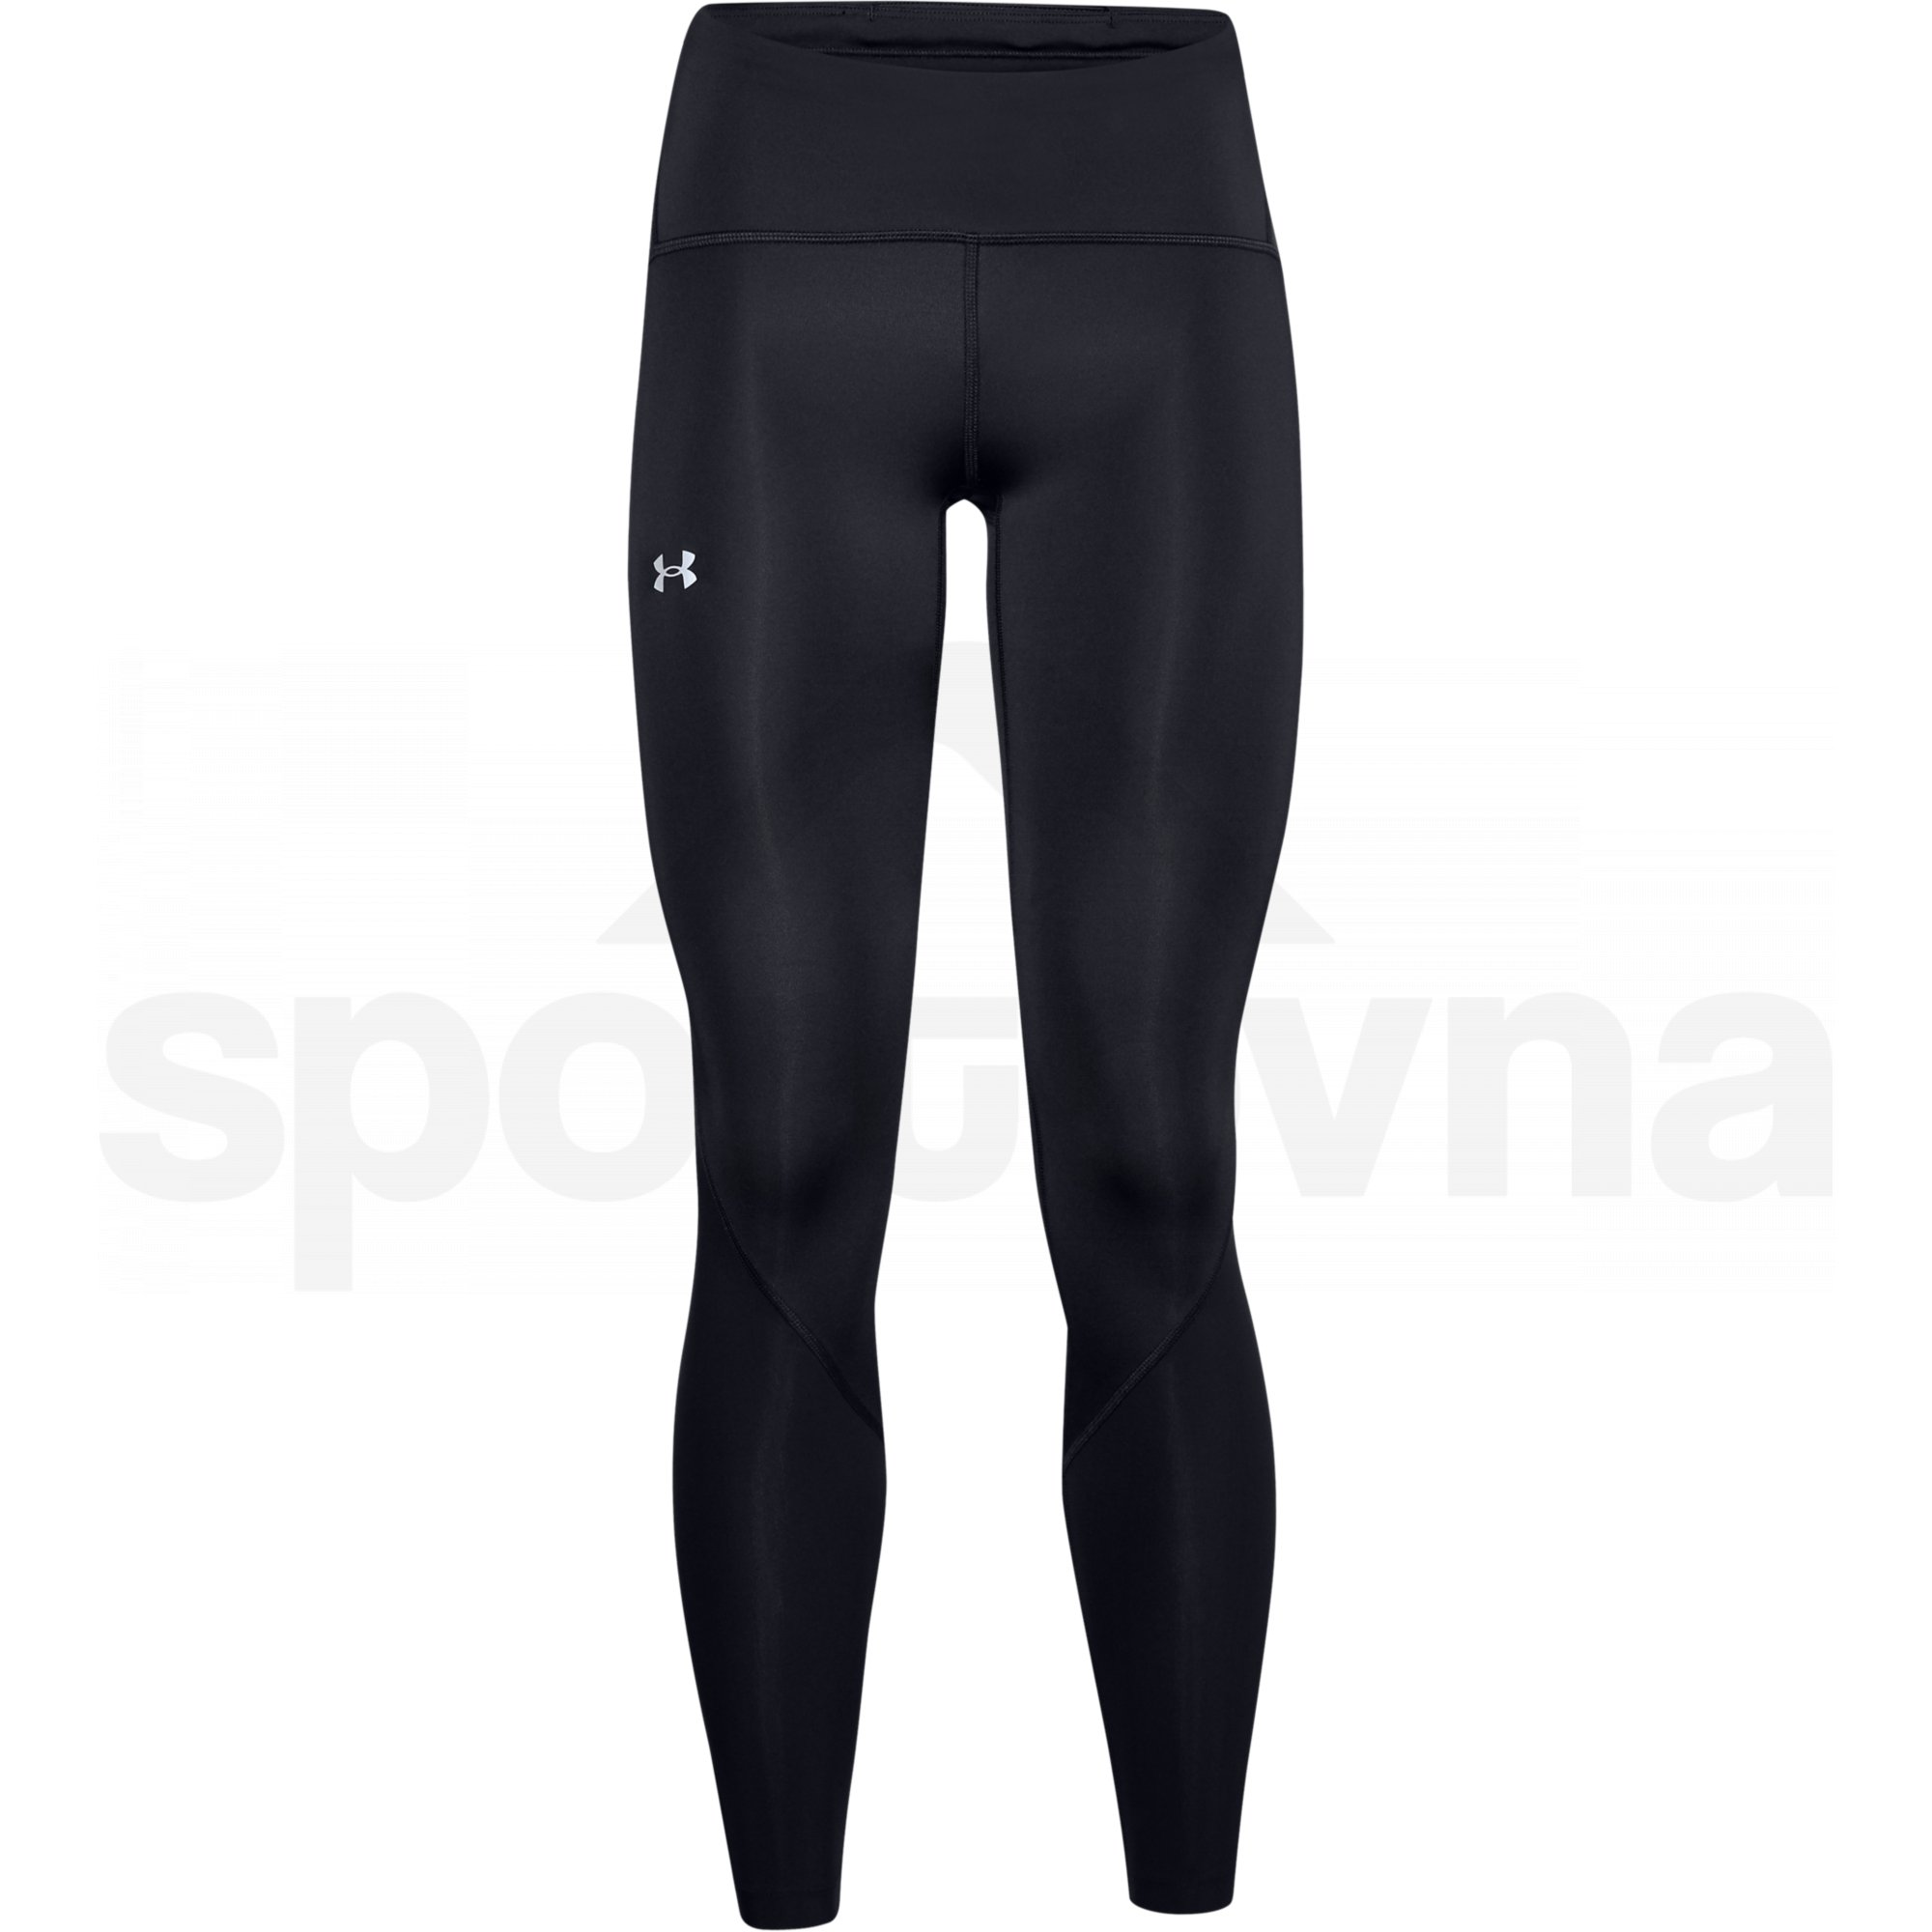 1356181-001_Under Armour Fly Fast 2.0 Tight W